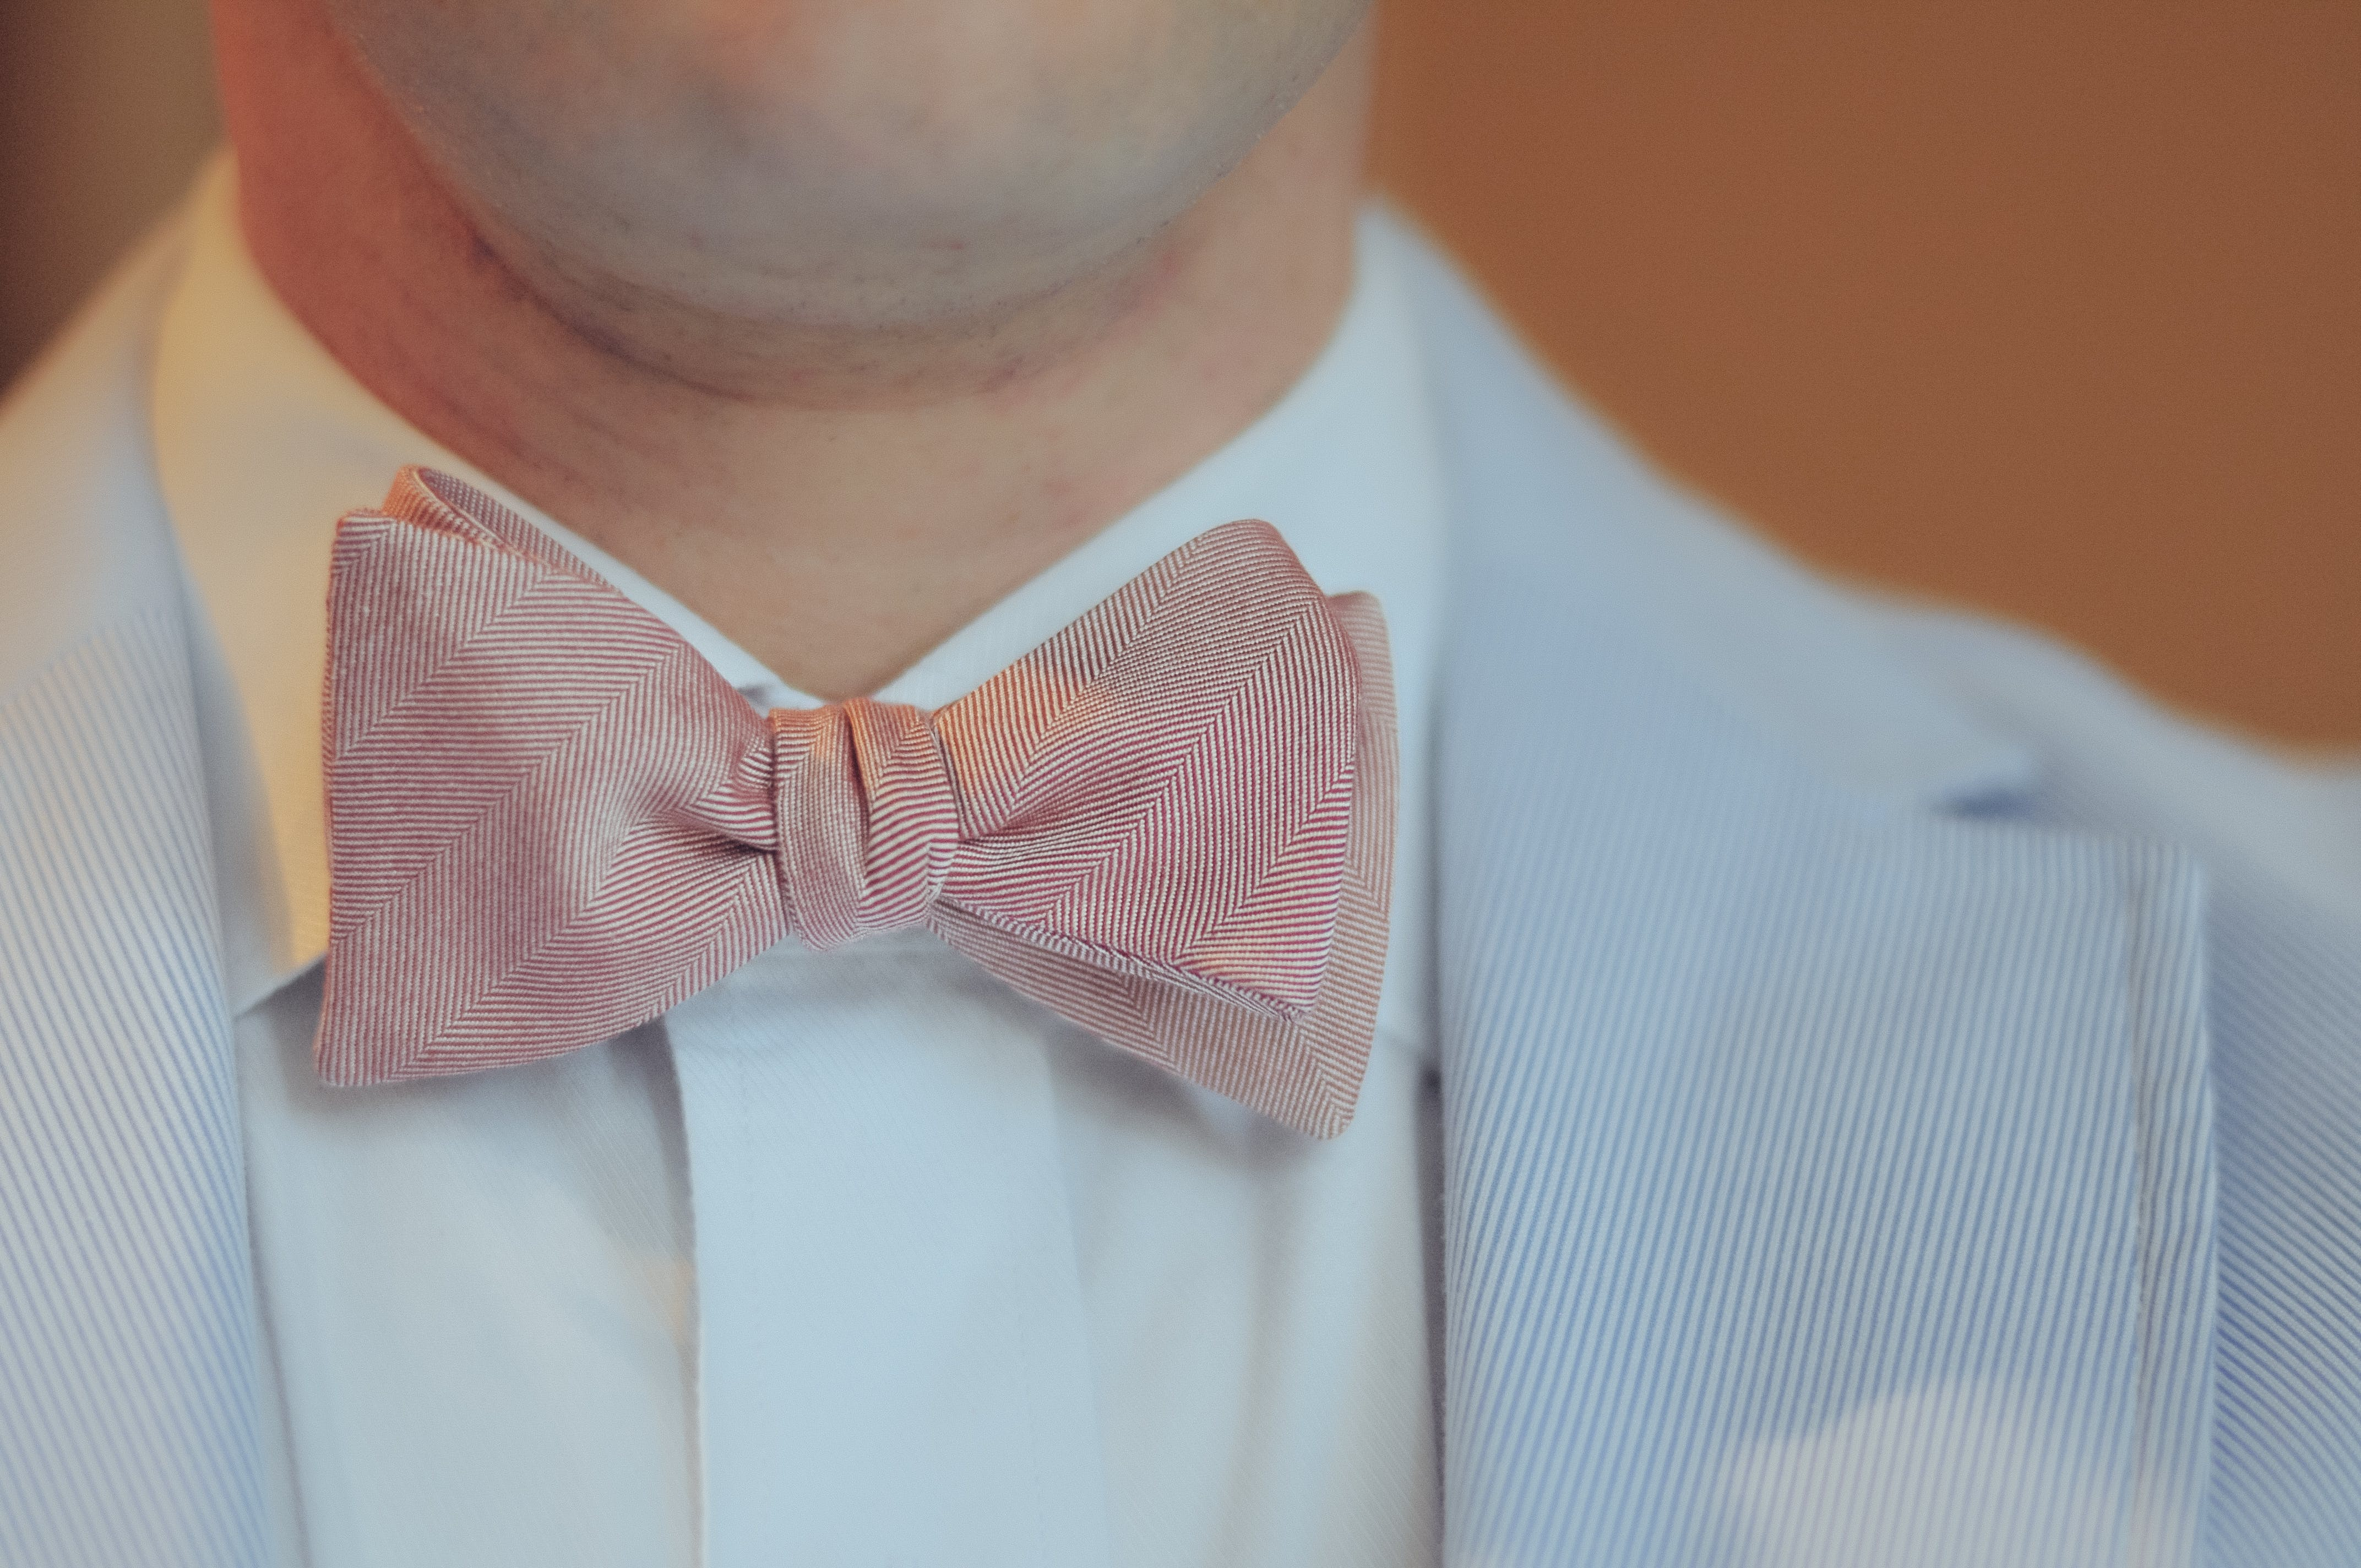 Close-up Photography of Person Wearing Pink Bow-tie and Gray Notched Lapel Suit